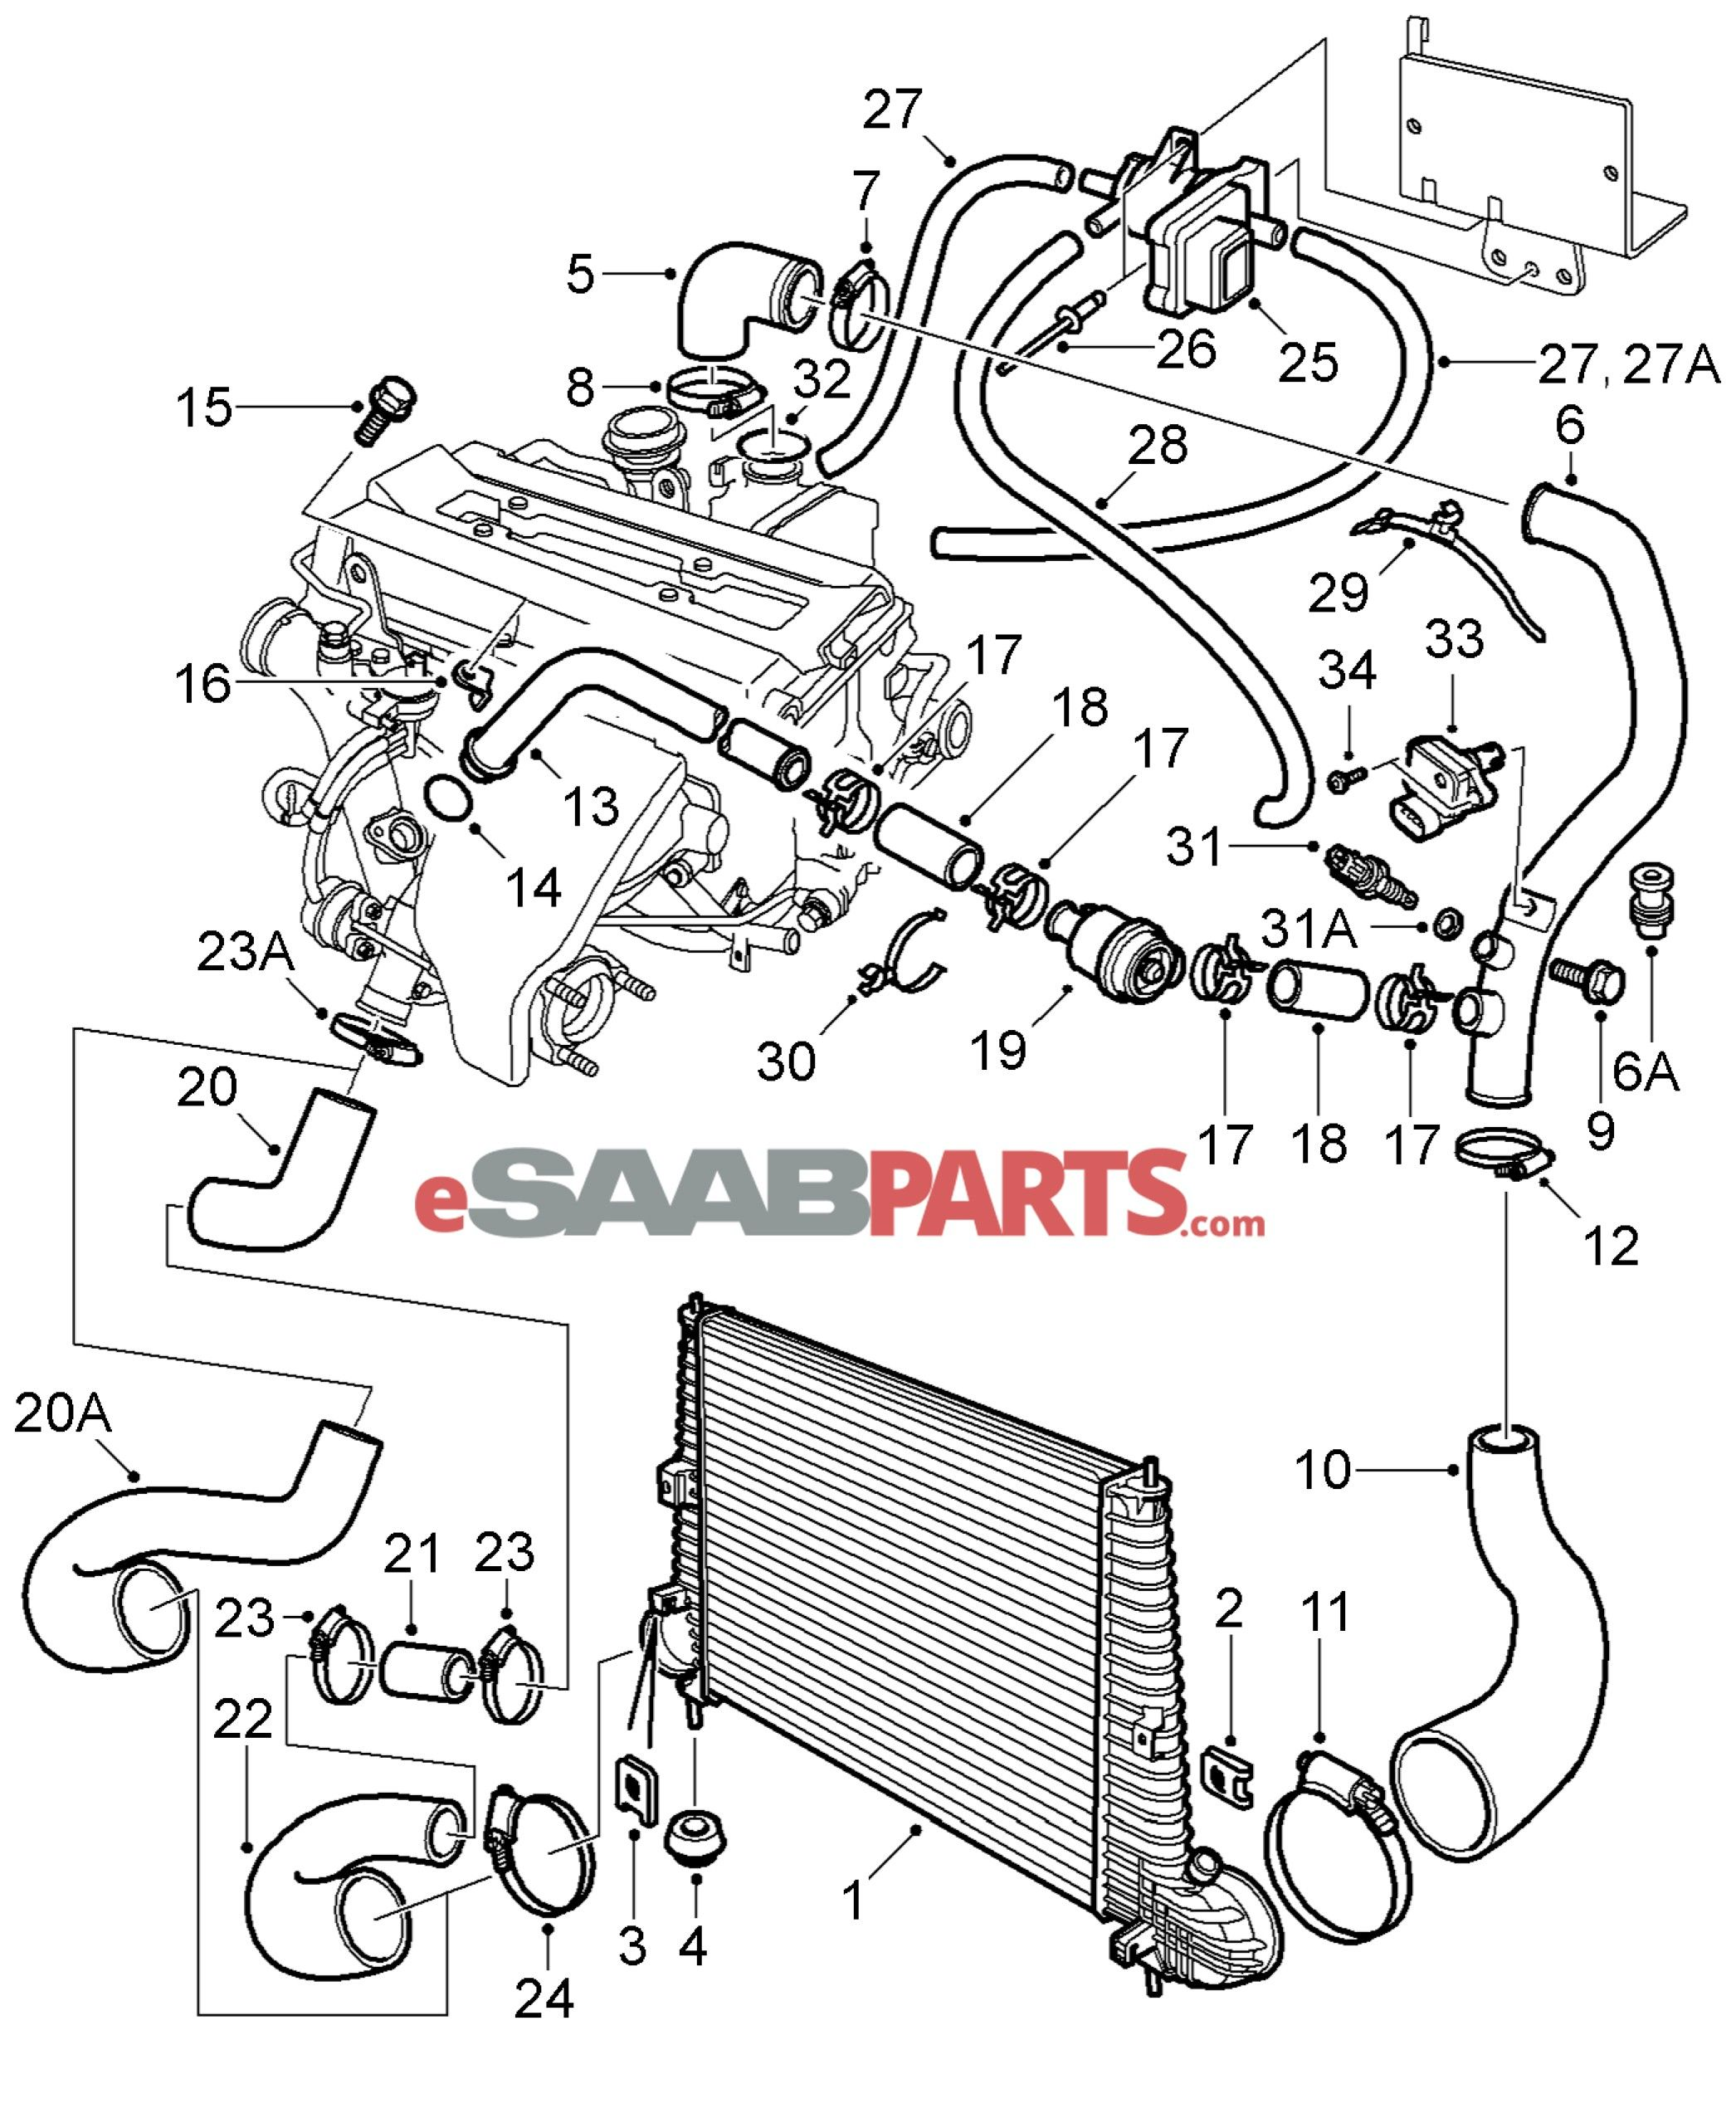 2005 saab 9 5 engine part diagram basic guide wiring